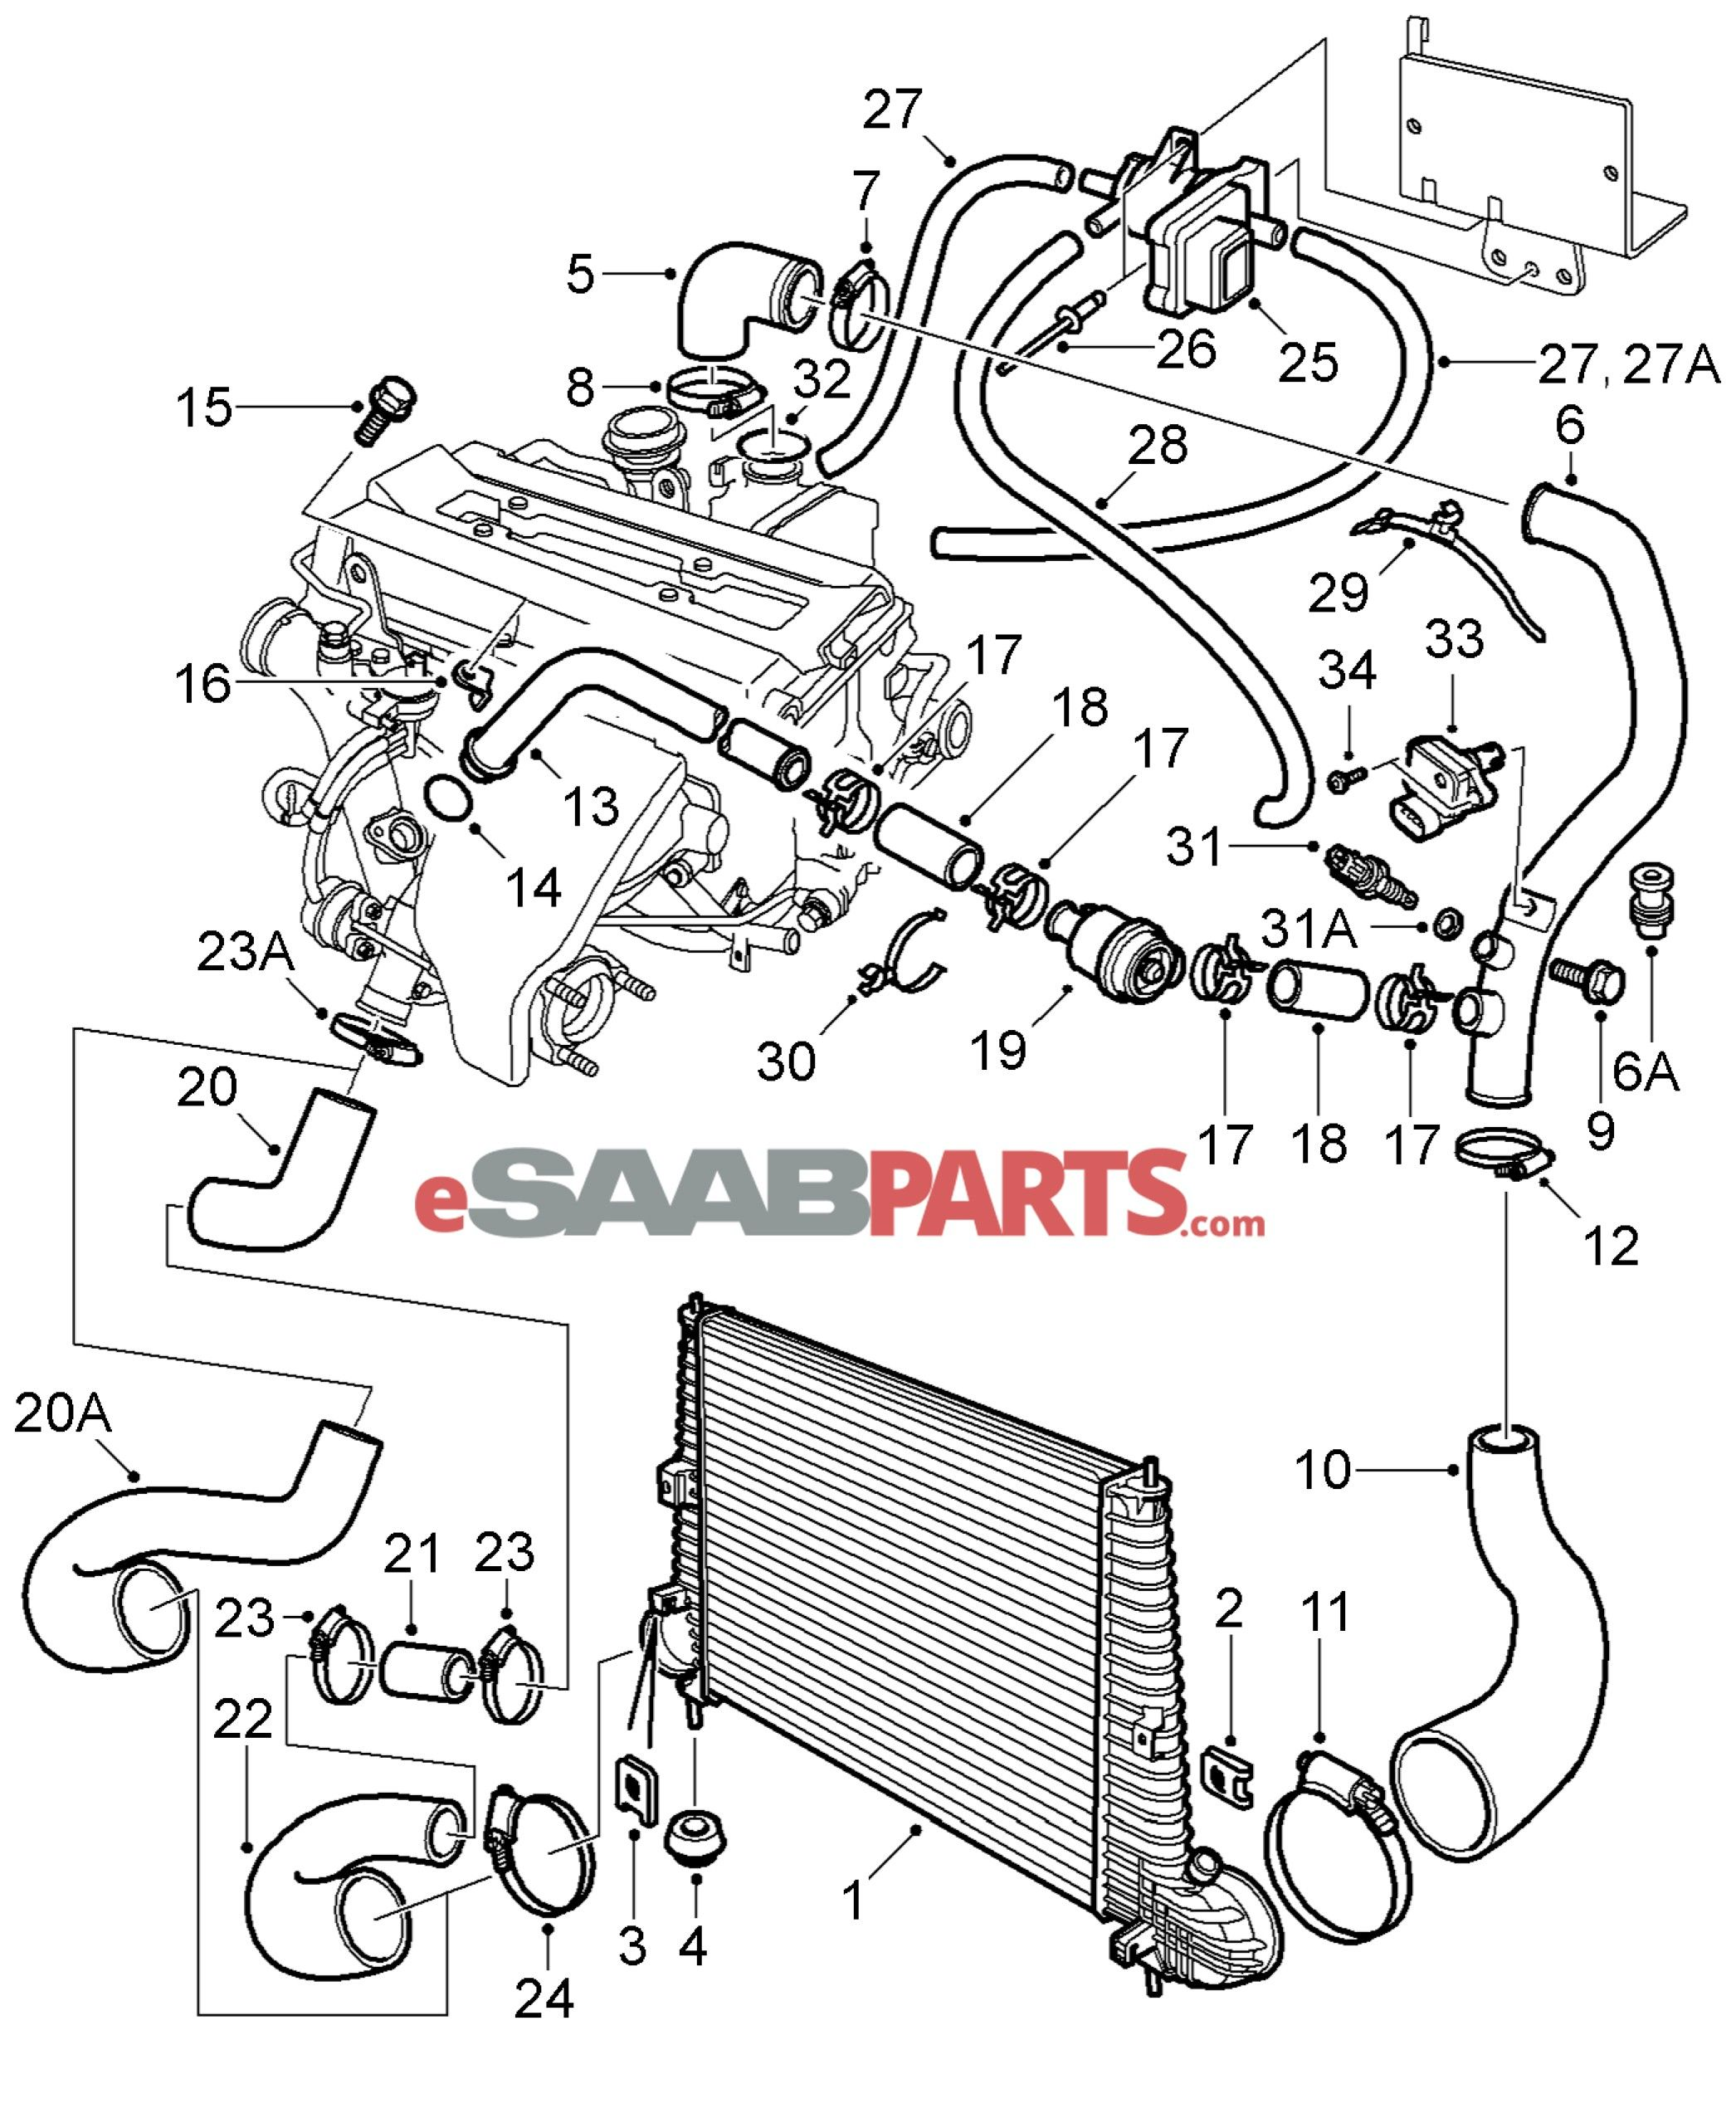 2005 saab 9 5 engine part diagram basic guide wiring